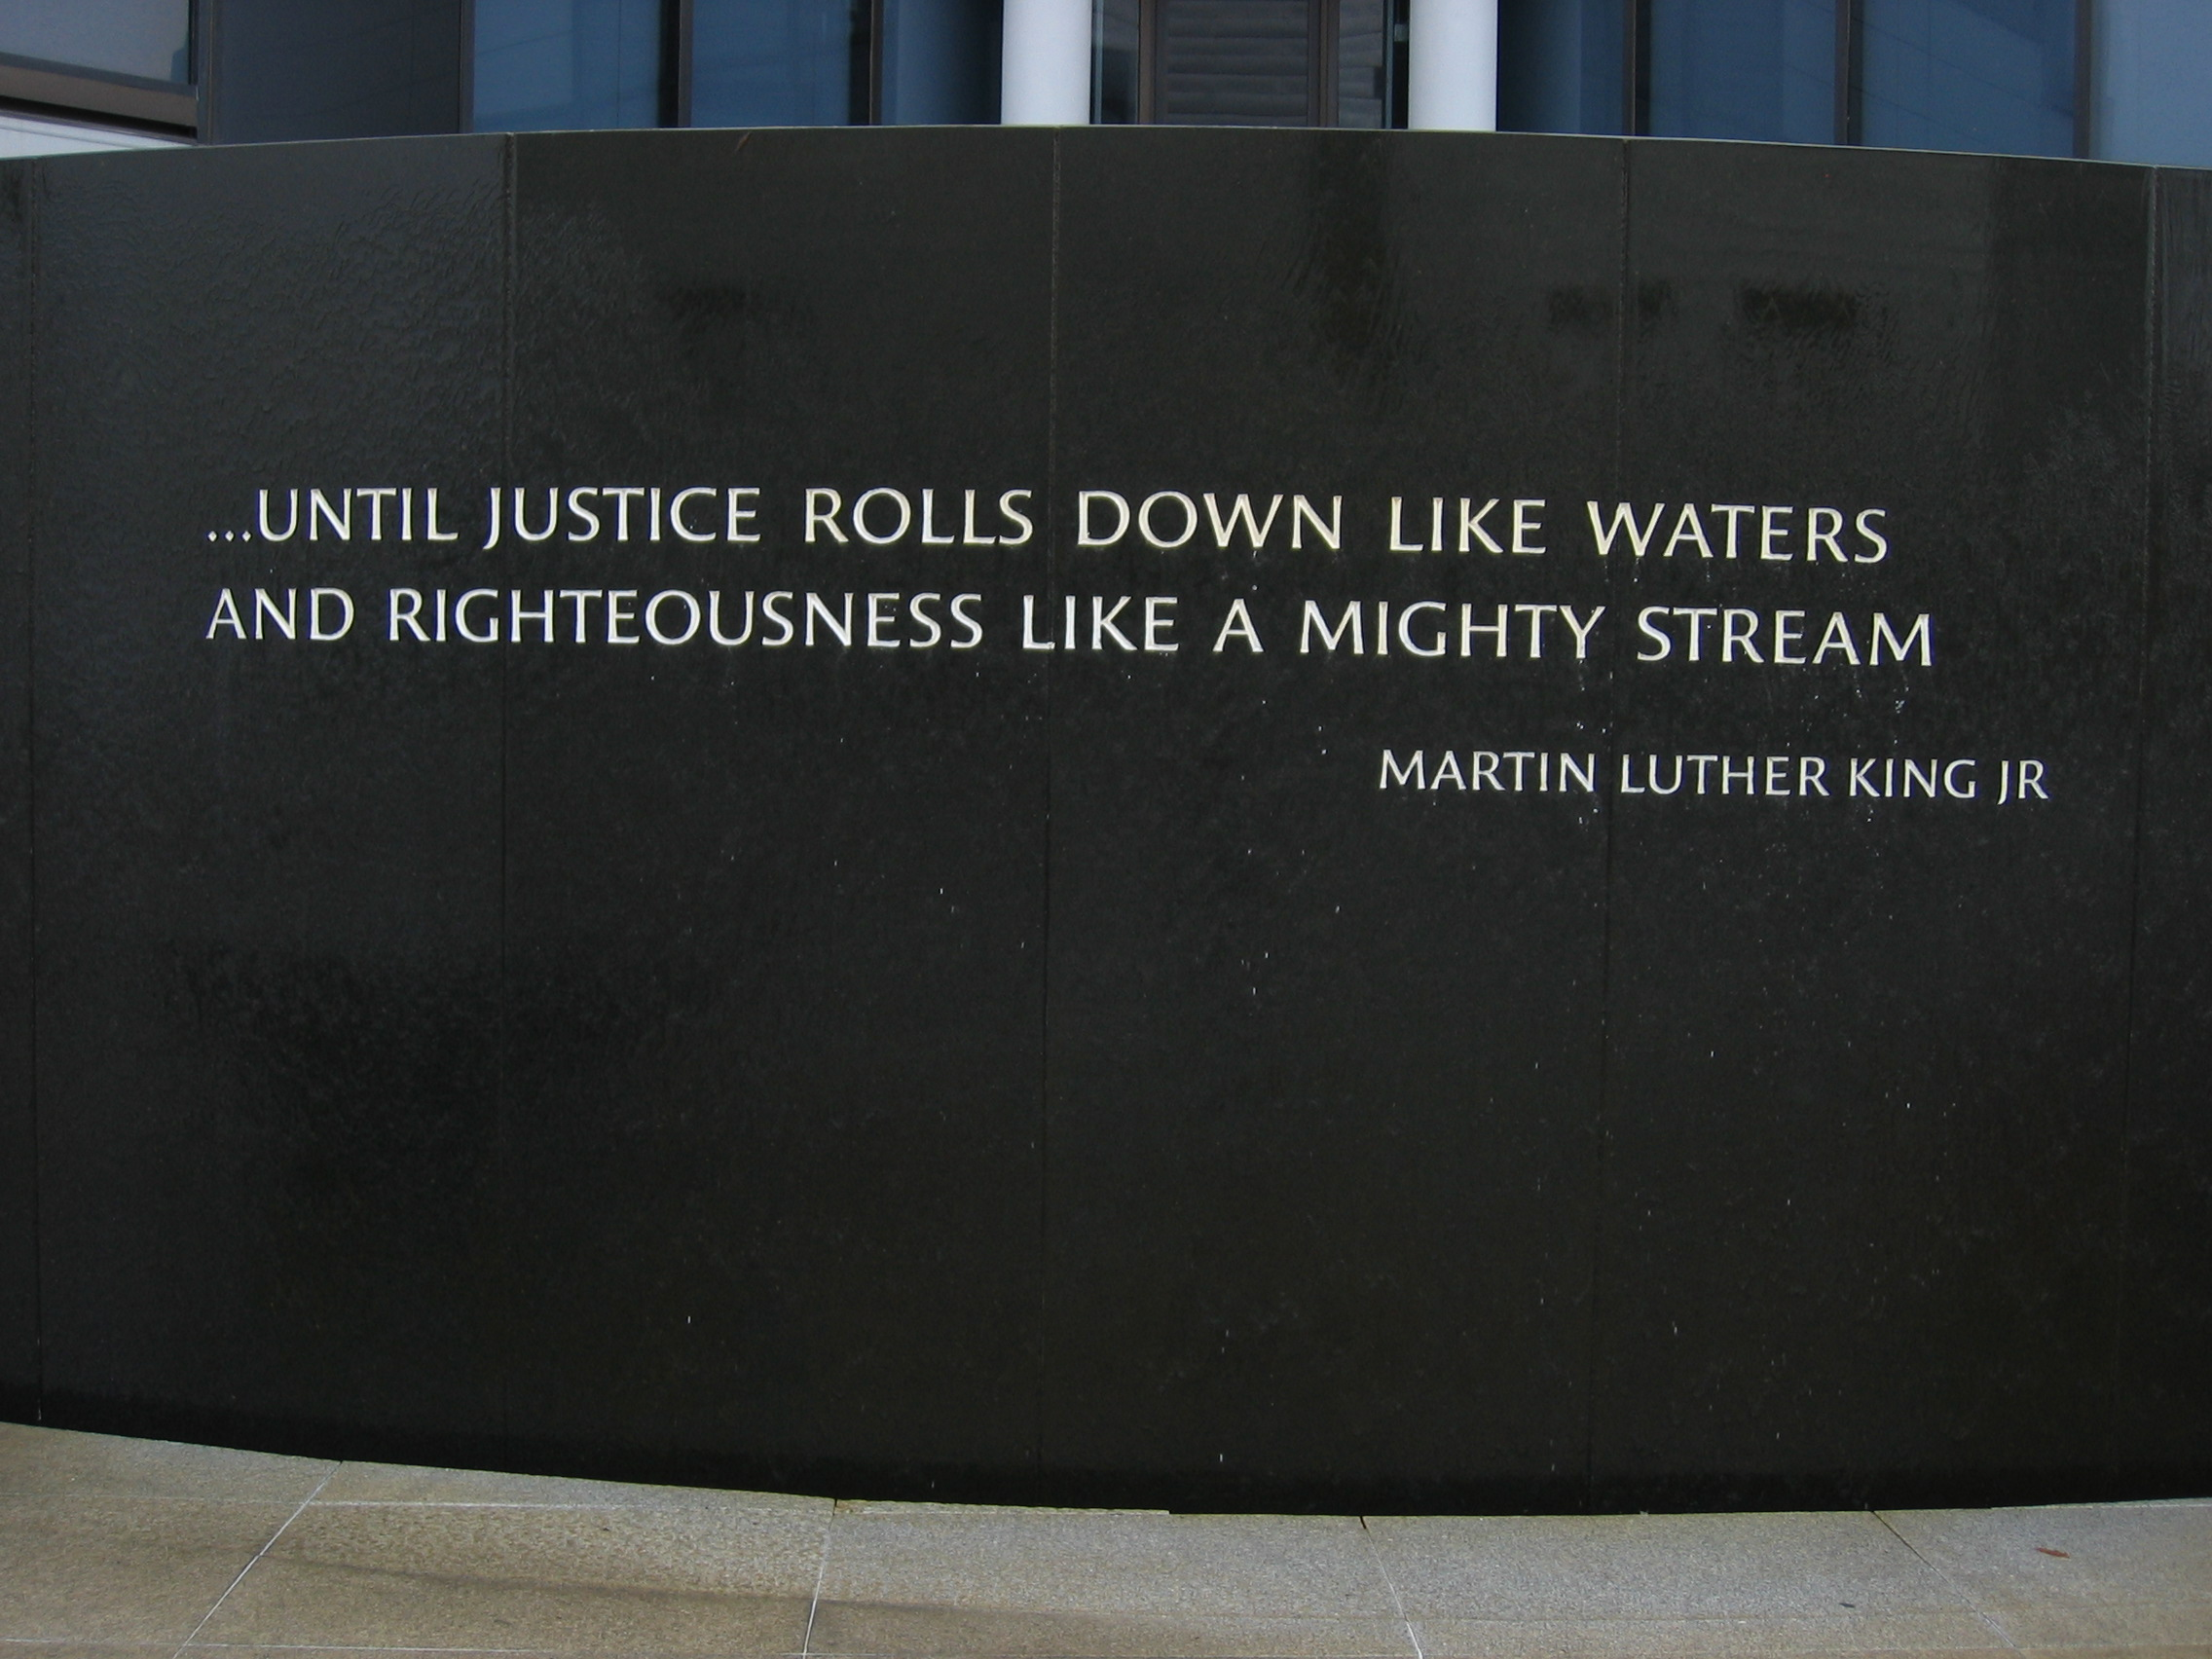 Martin Luther King Jr quote on wall